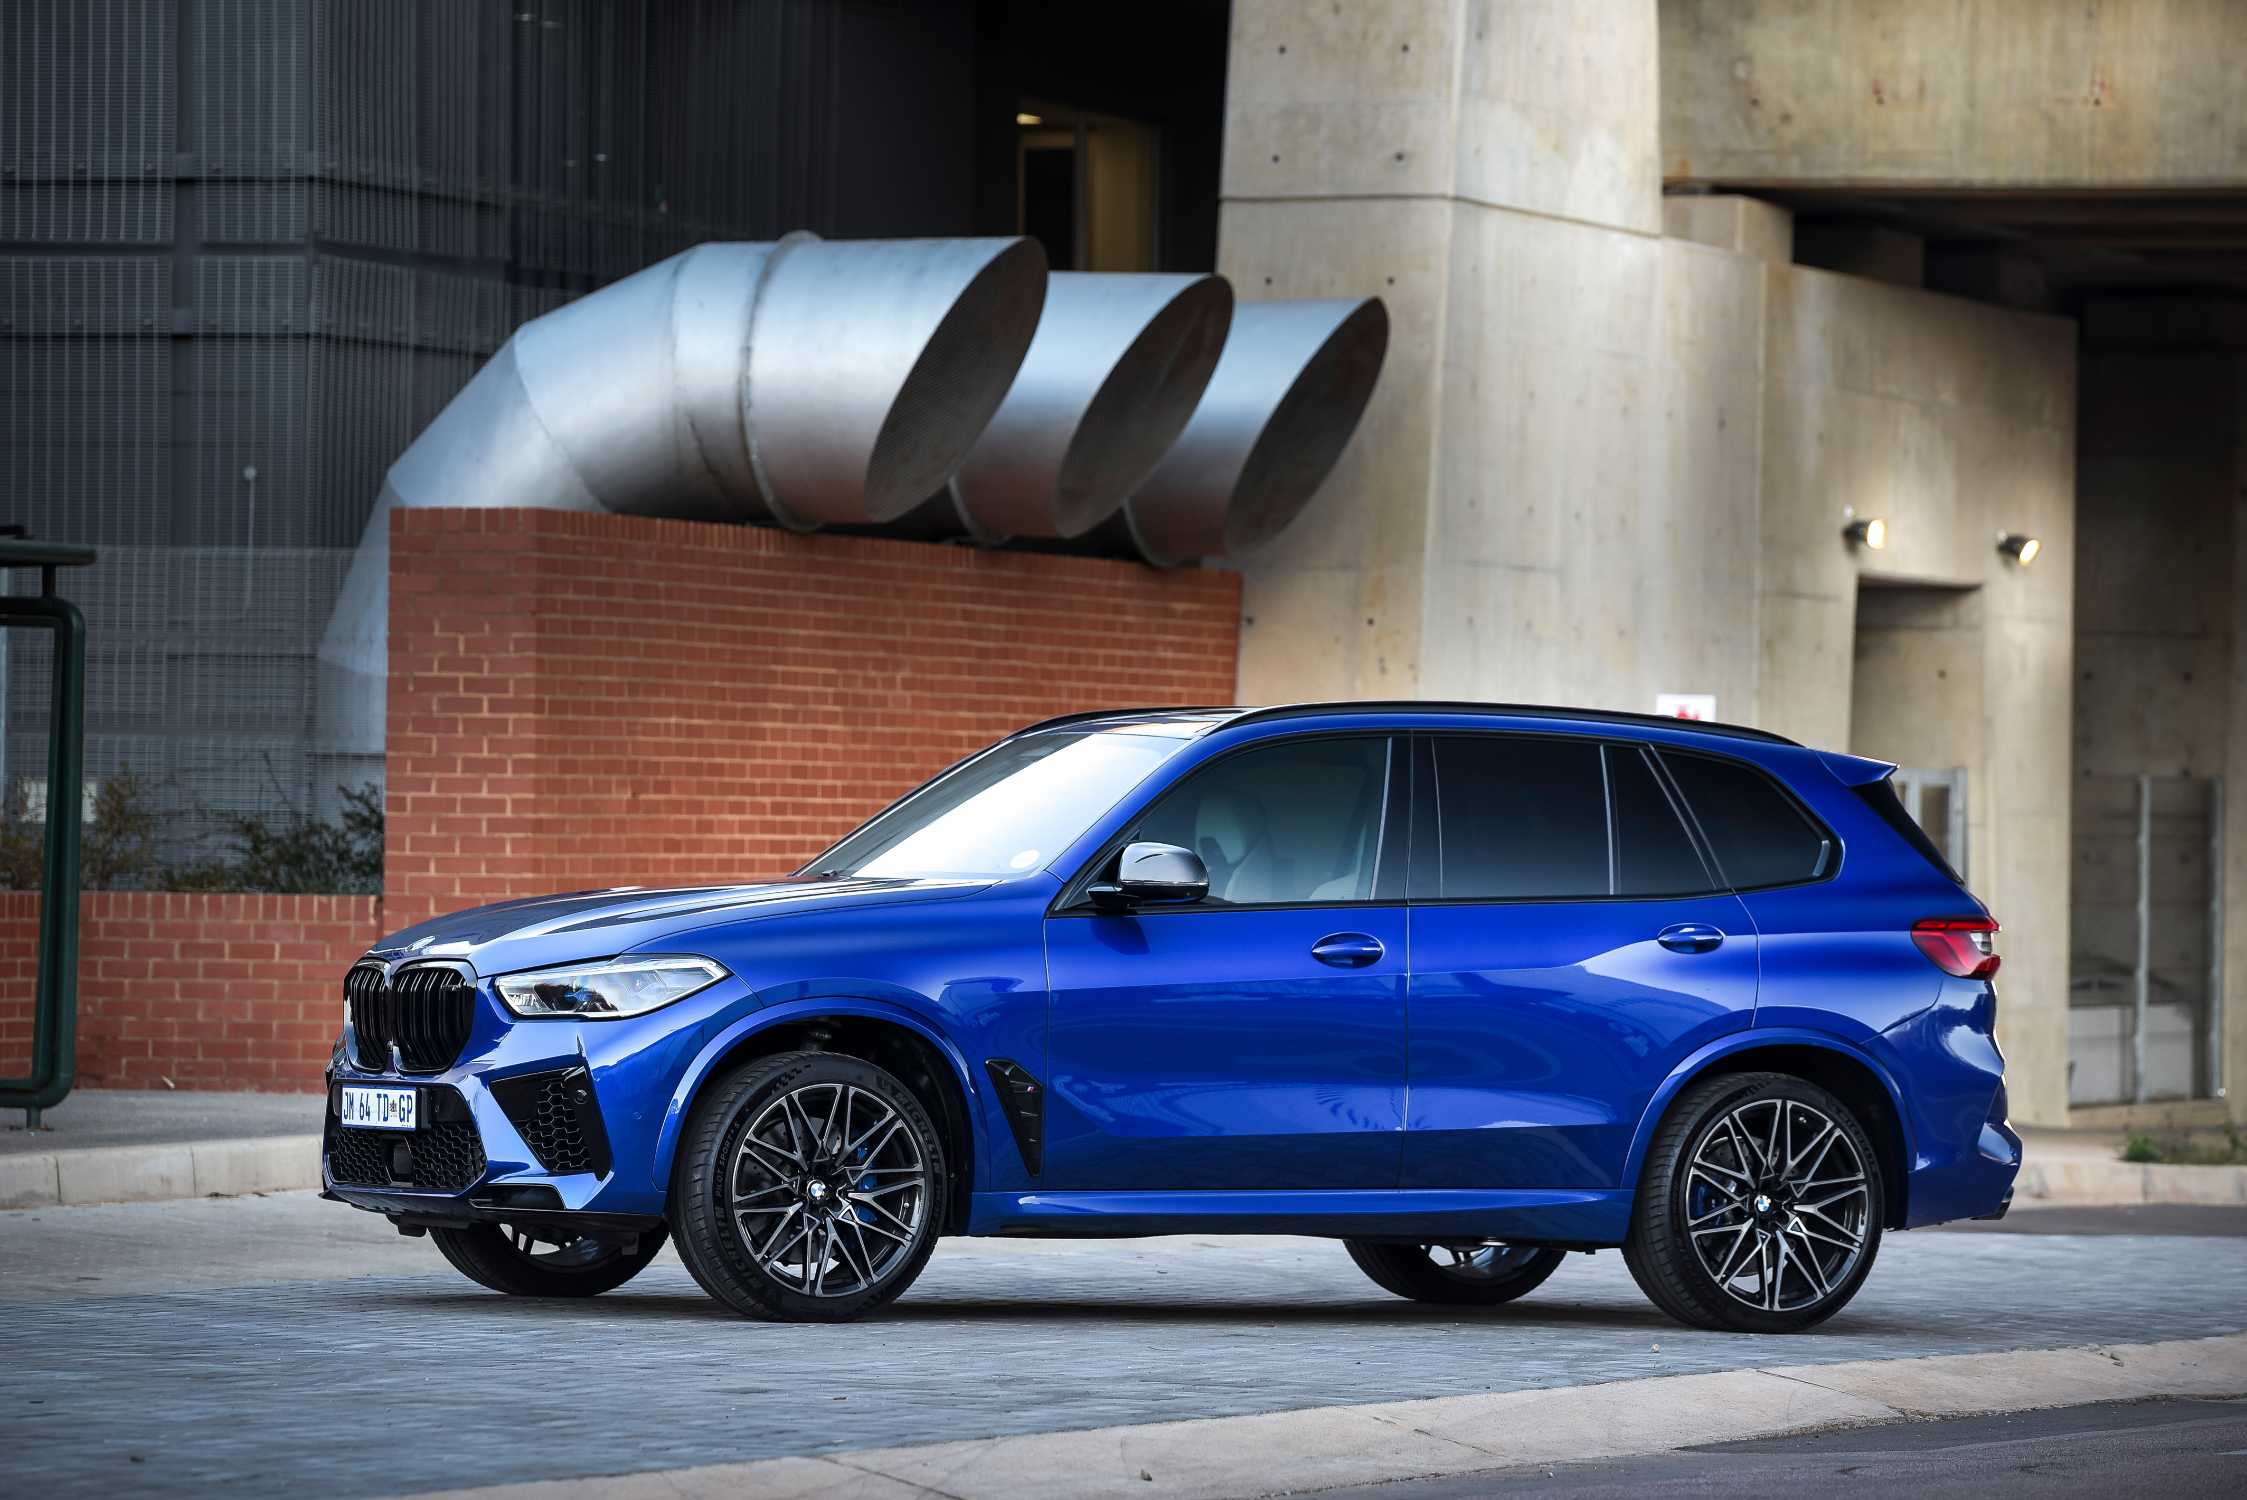 The All New Bmw X5 M Competition And Bmw X6 M Competition 07 2020